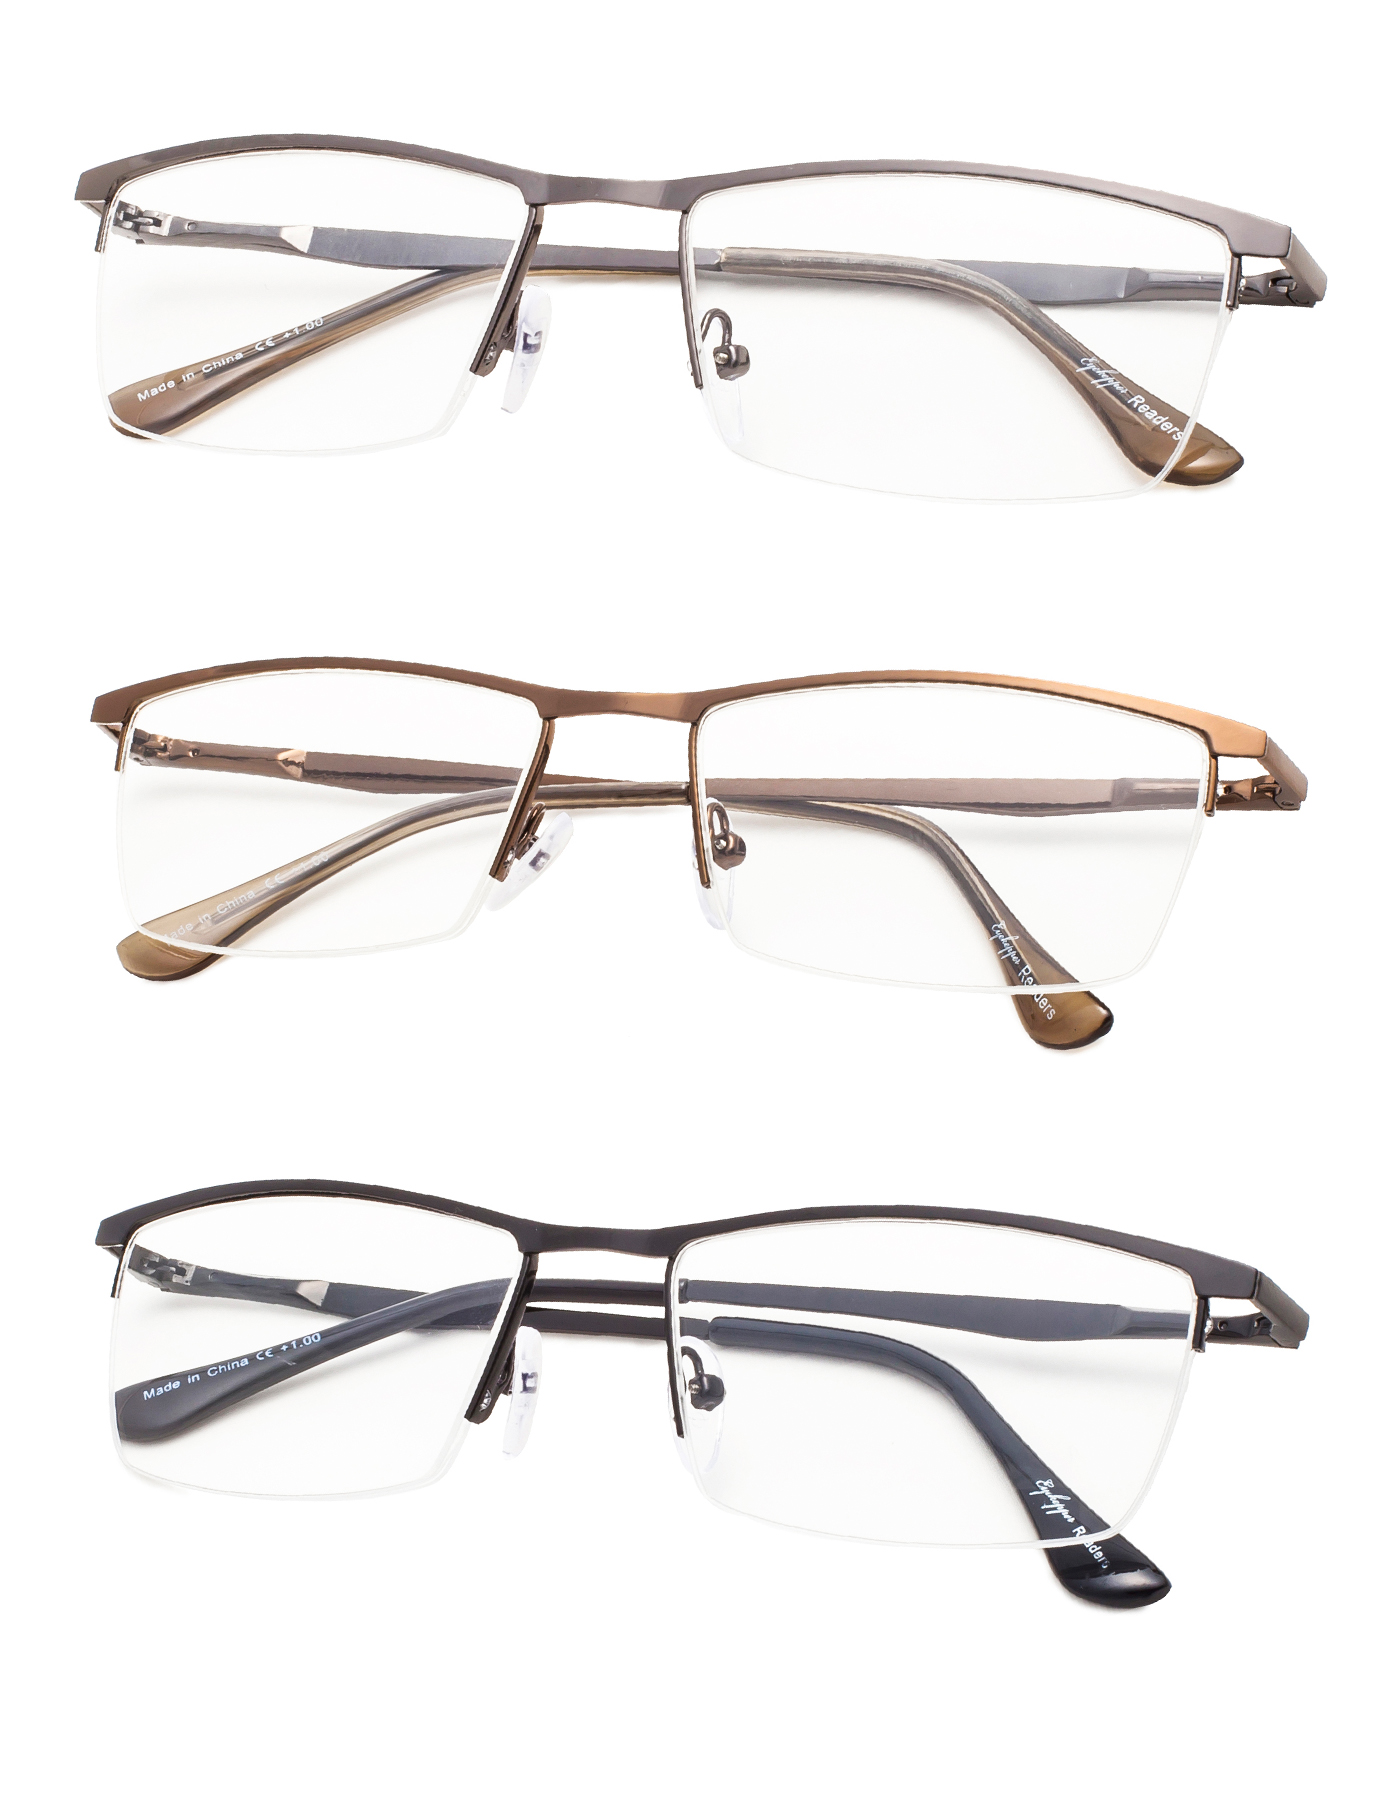 9a7478e58e71 Eyekepper Reading Glasses 3-Pack Quality Metal Half-Rim Design with  Rectangle Lens R1614-3pcs-Mix